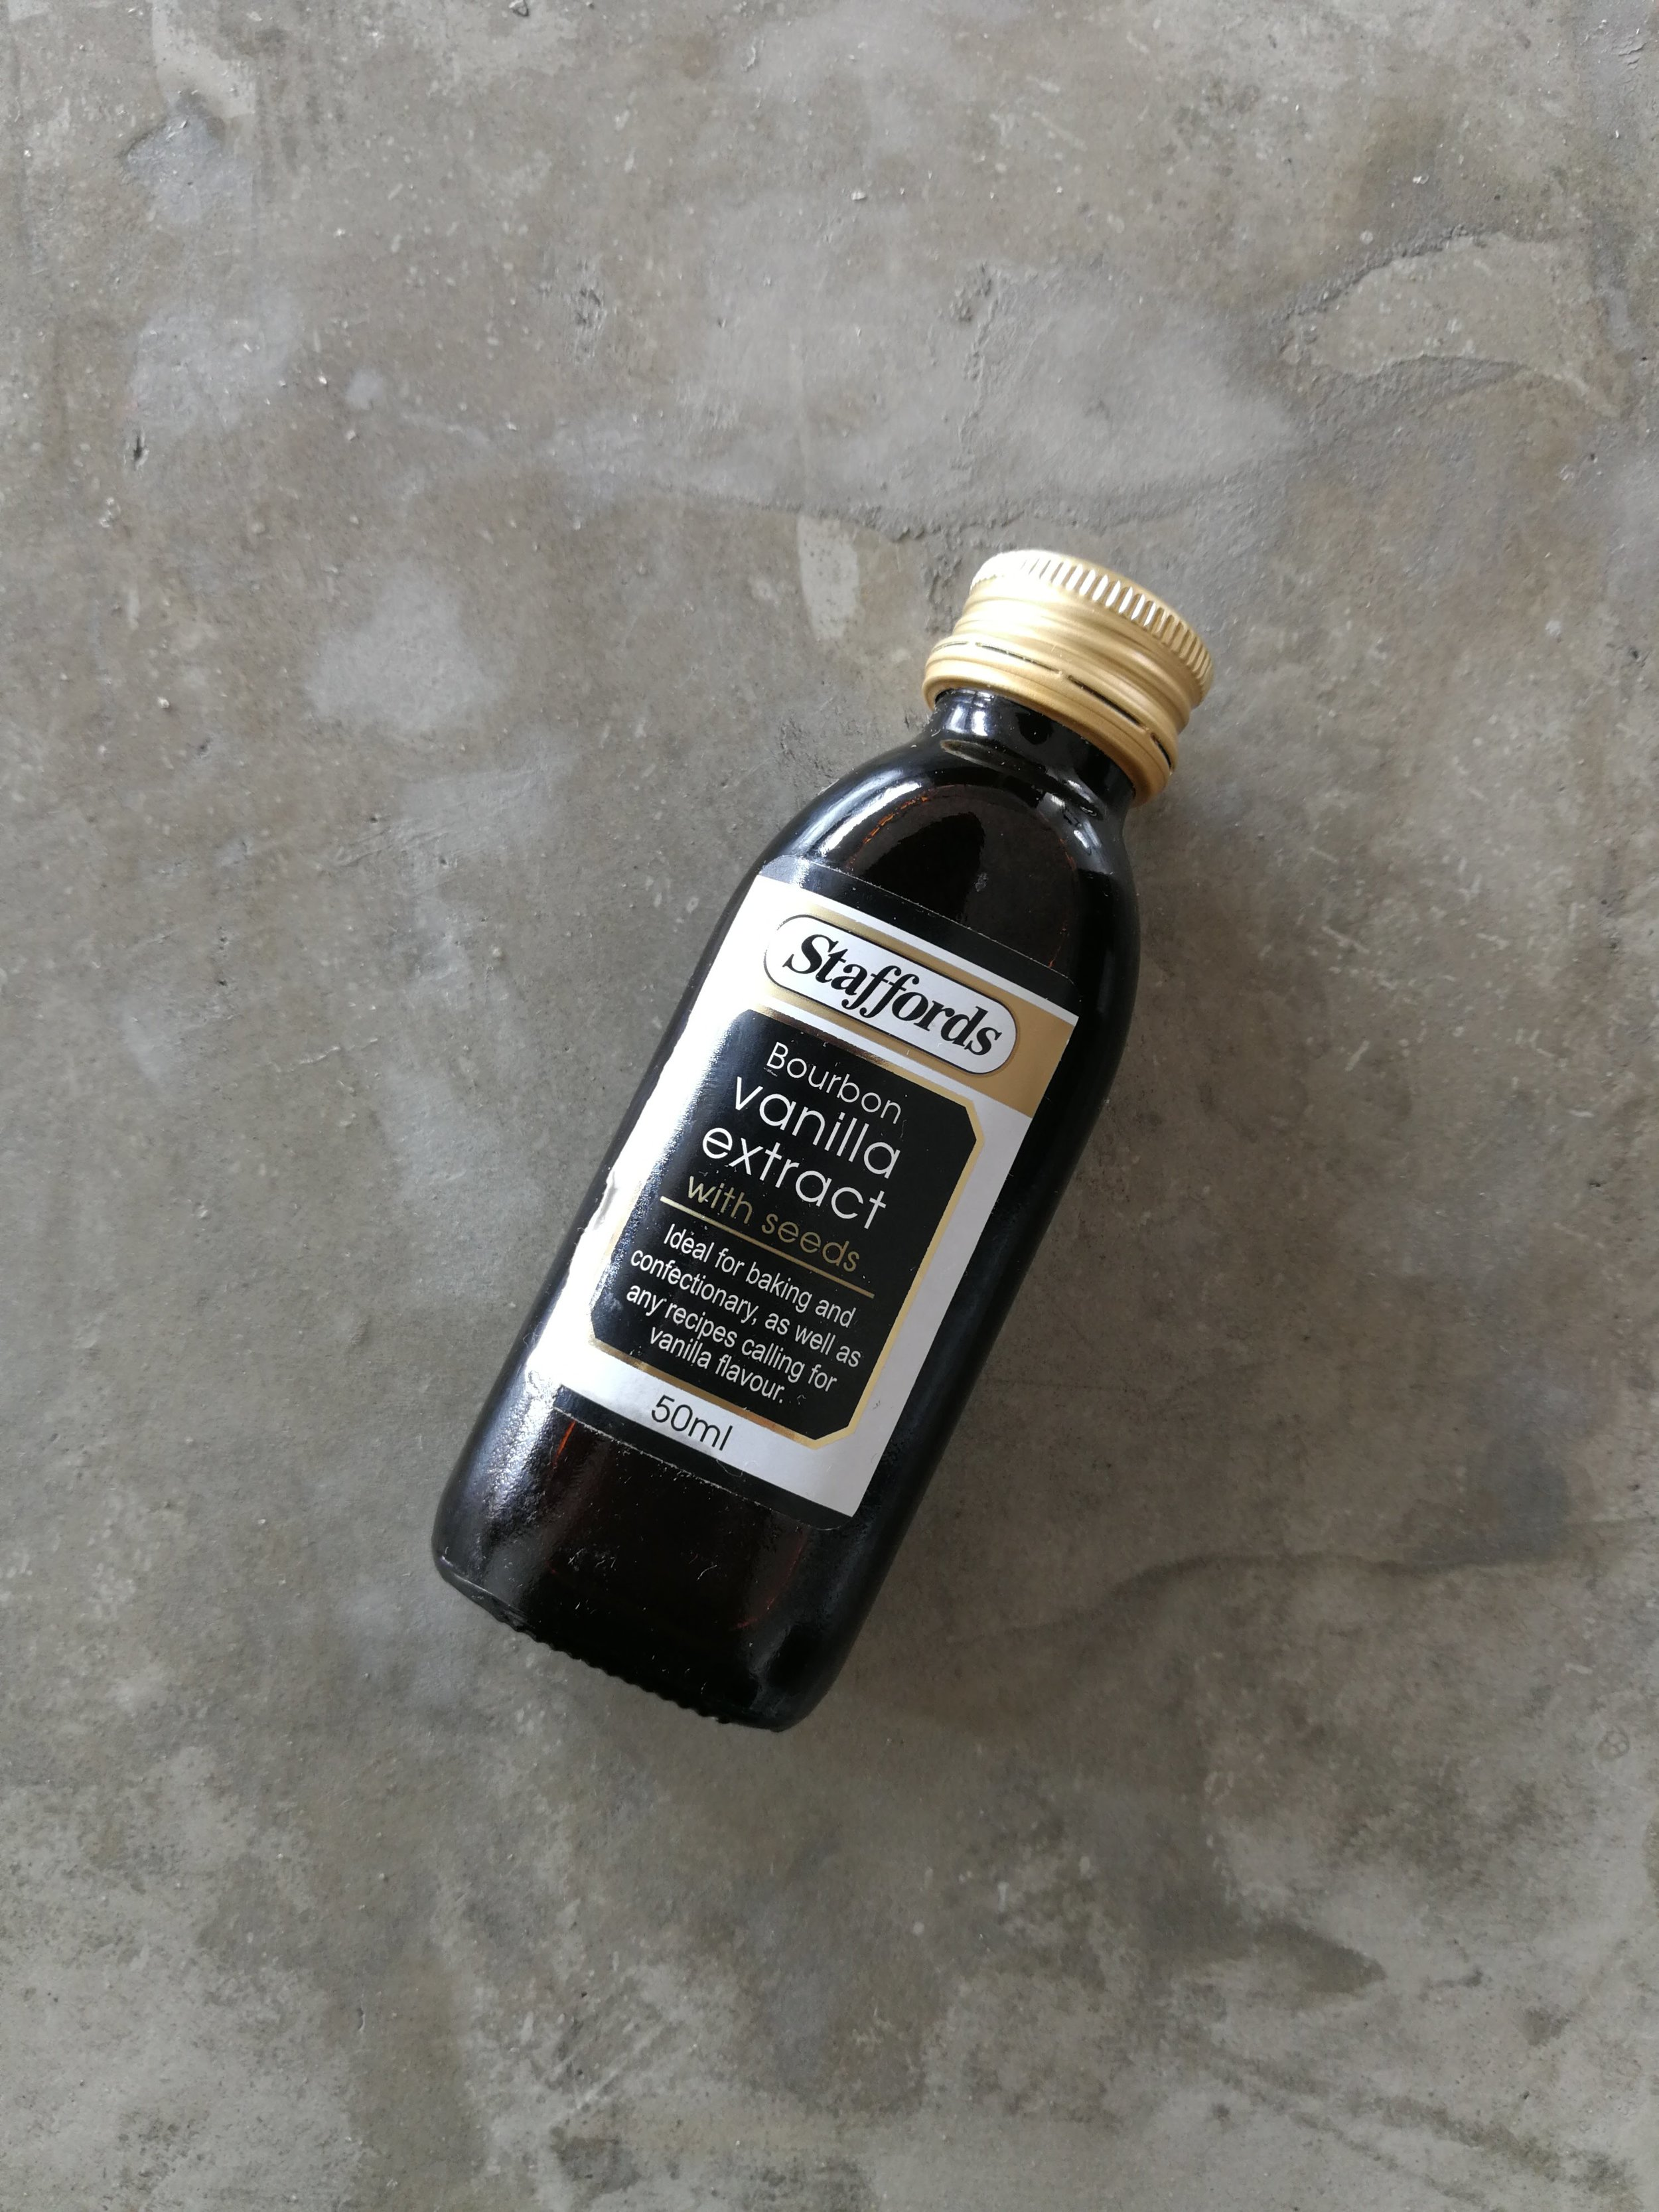 Aromatics  - 2 Drops Vanilla ExtractSweeten with Honey or Maple Syrup to taste.